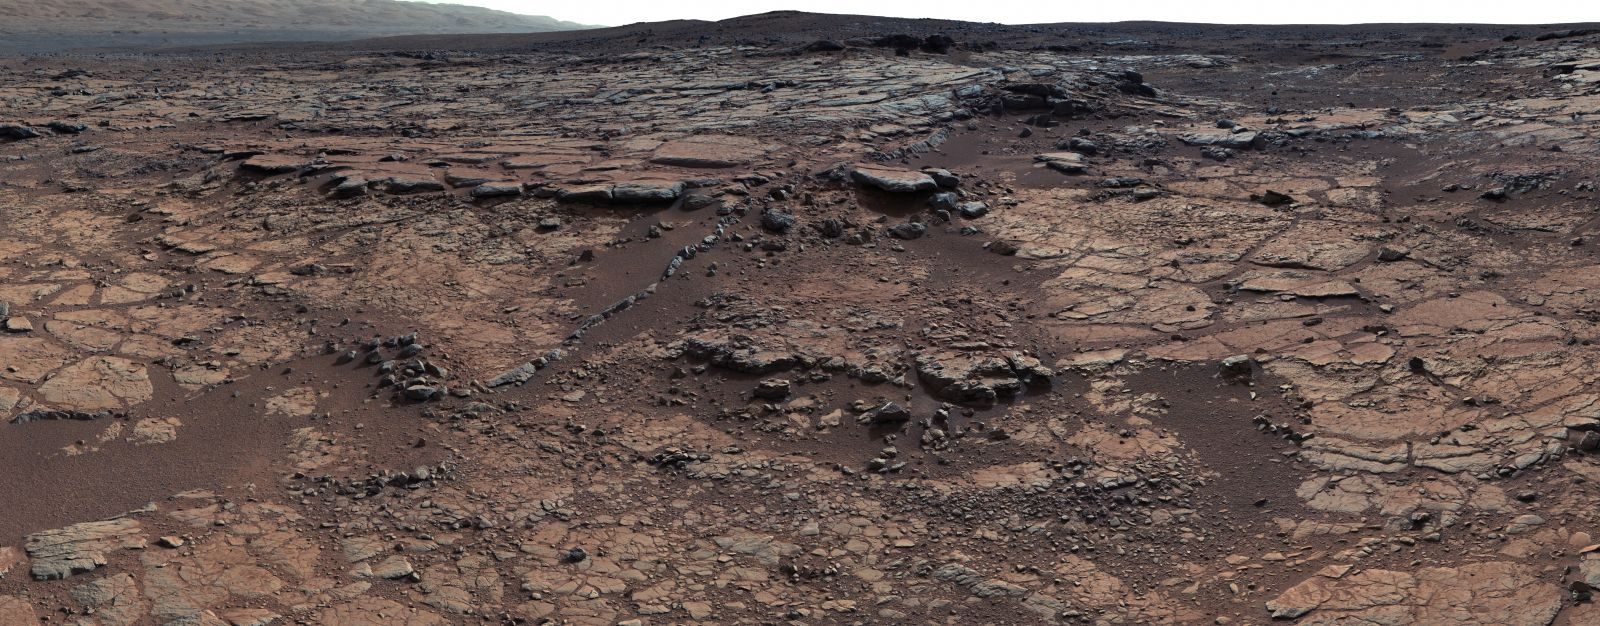 This mosaic of images from Curiosity's Mast Camera (Mastcam) shows geological members of the Yellowknife Bay formation. The scene has the Sheepbed mudstone in the foreground and rises up through Gillespie Lake member to the Point Lake outcrop. The scene is a portion of a 111-image mosaic acquired during the 137th Martian day, or sol, of Curiosity's work on Mars (Dec. 24, 2012).